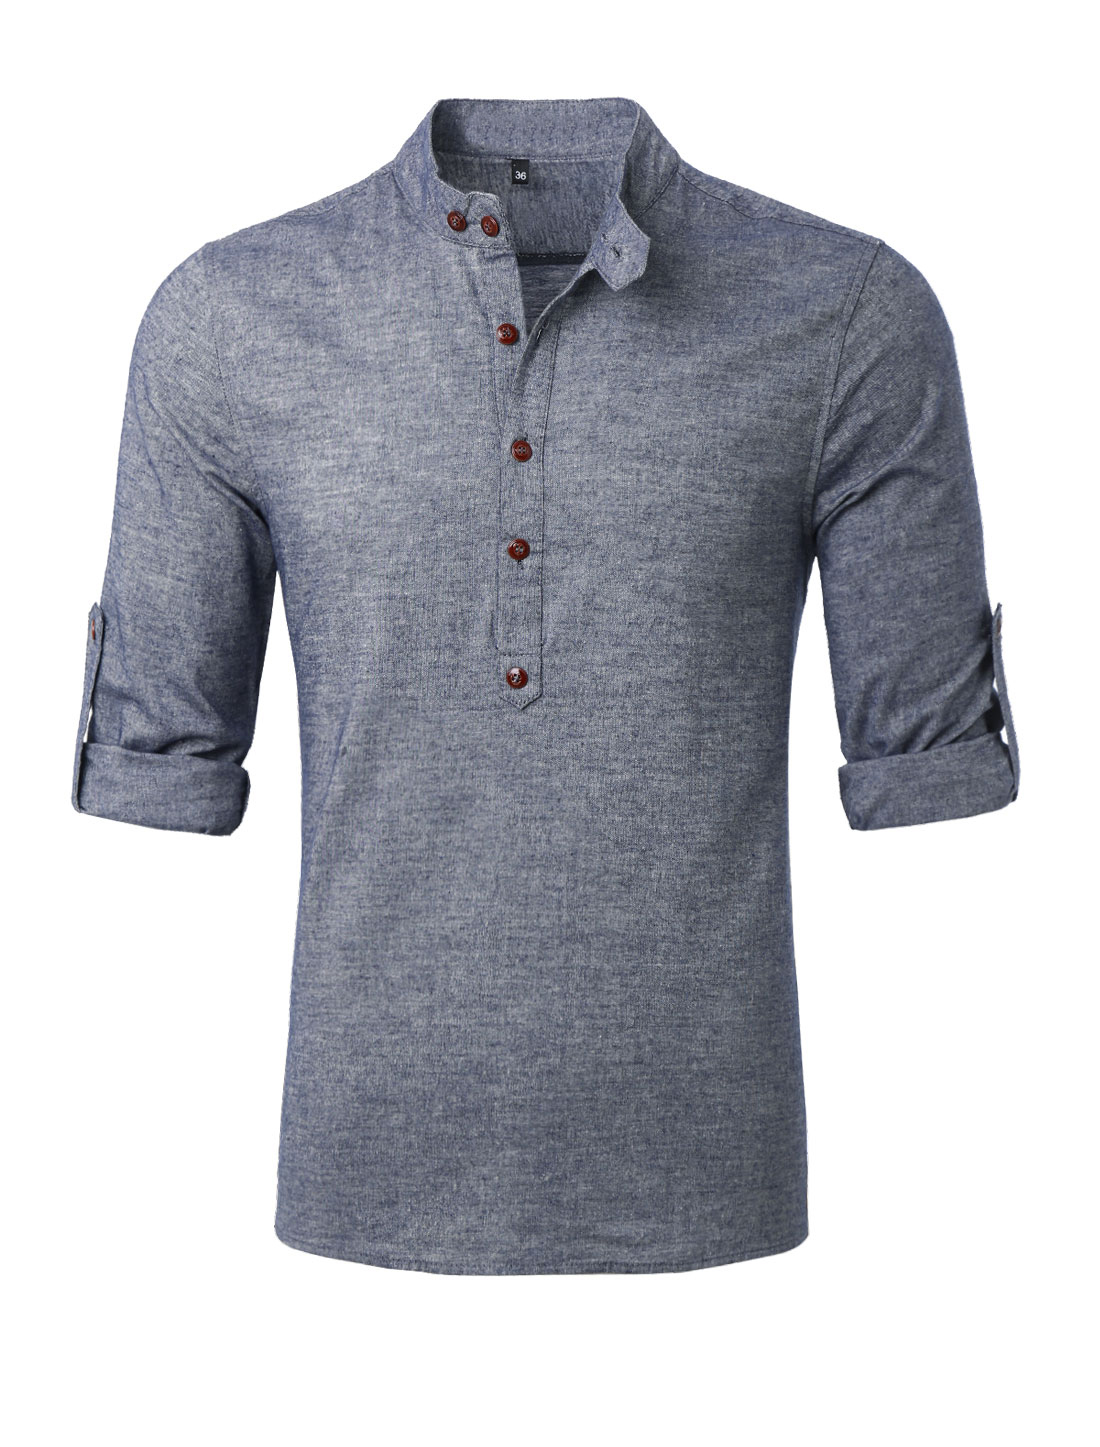 Men Button Placket Heathered Henley Shirt Light Cool Gray S